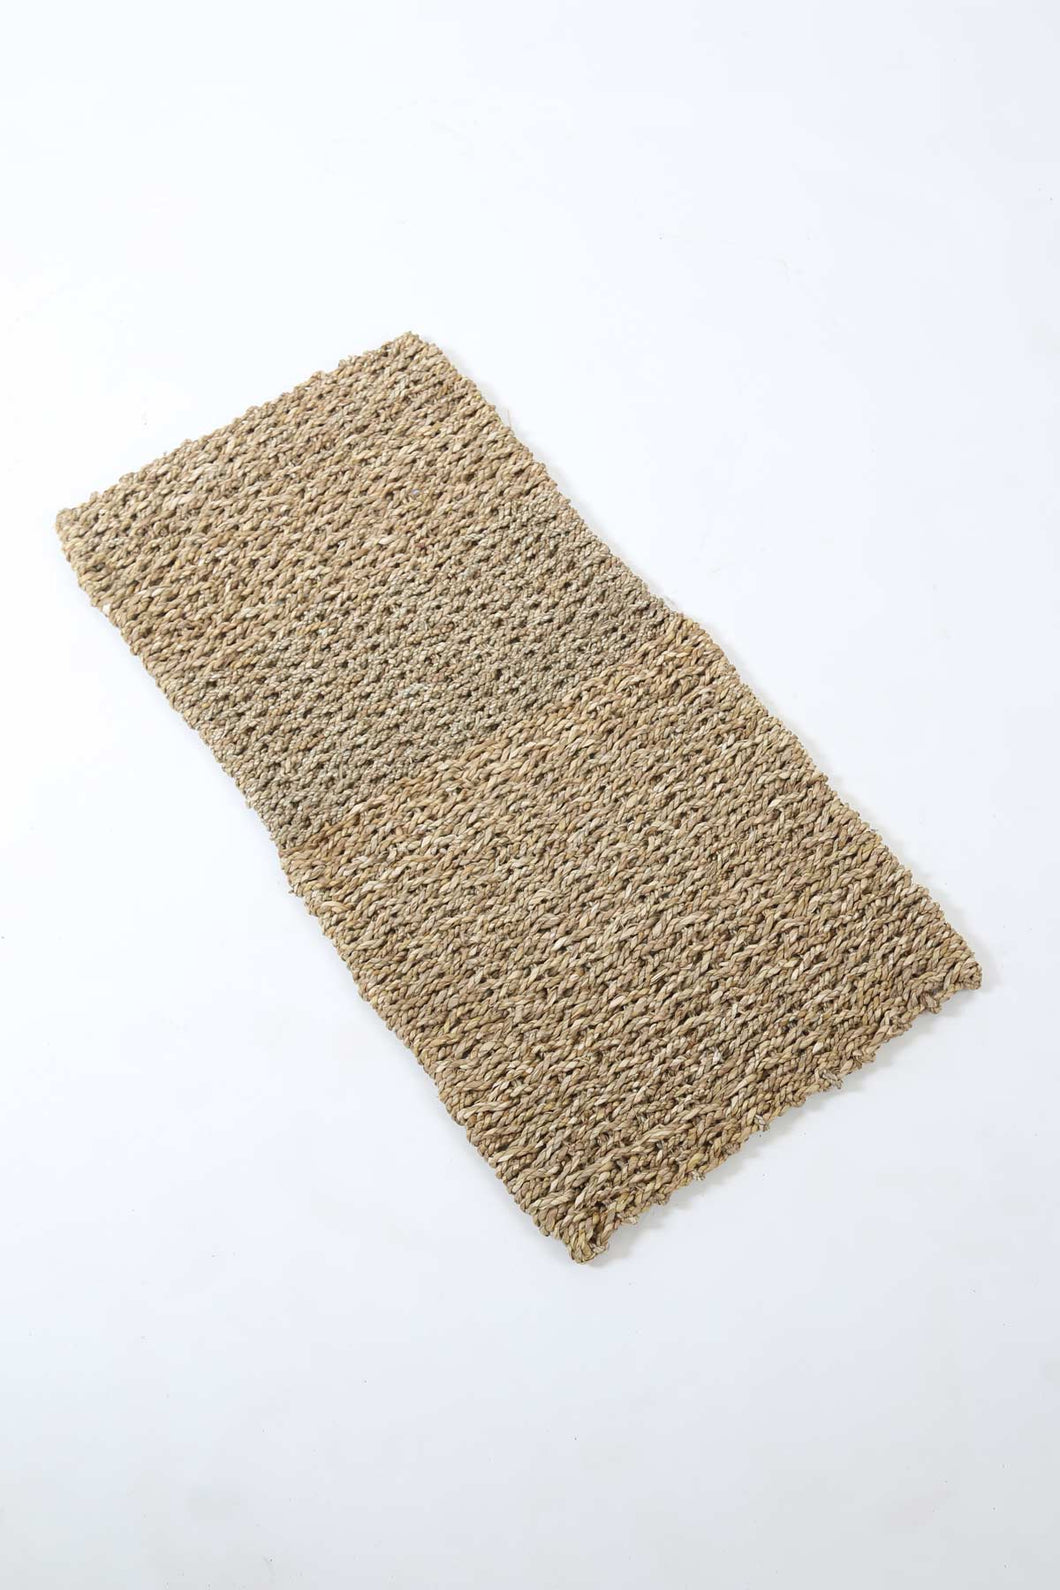 Hand Woven Seagrass Doormat in Natural